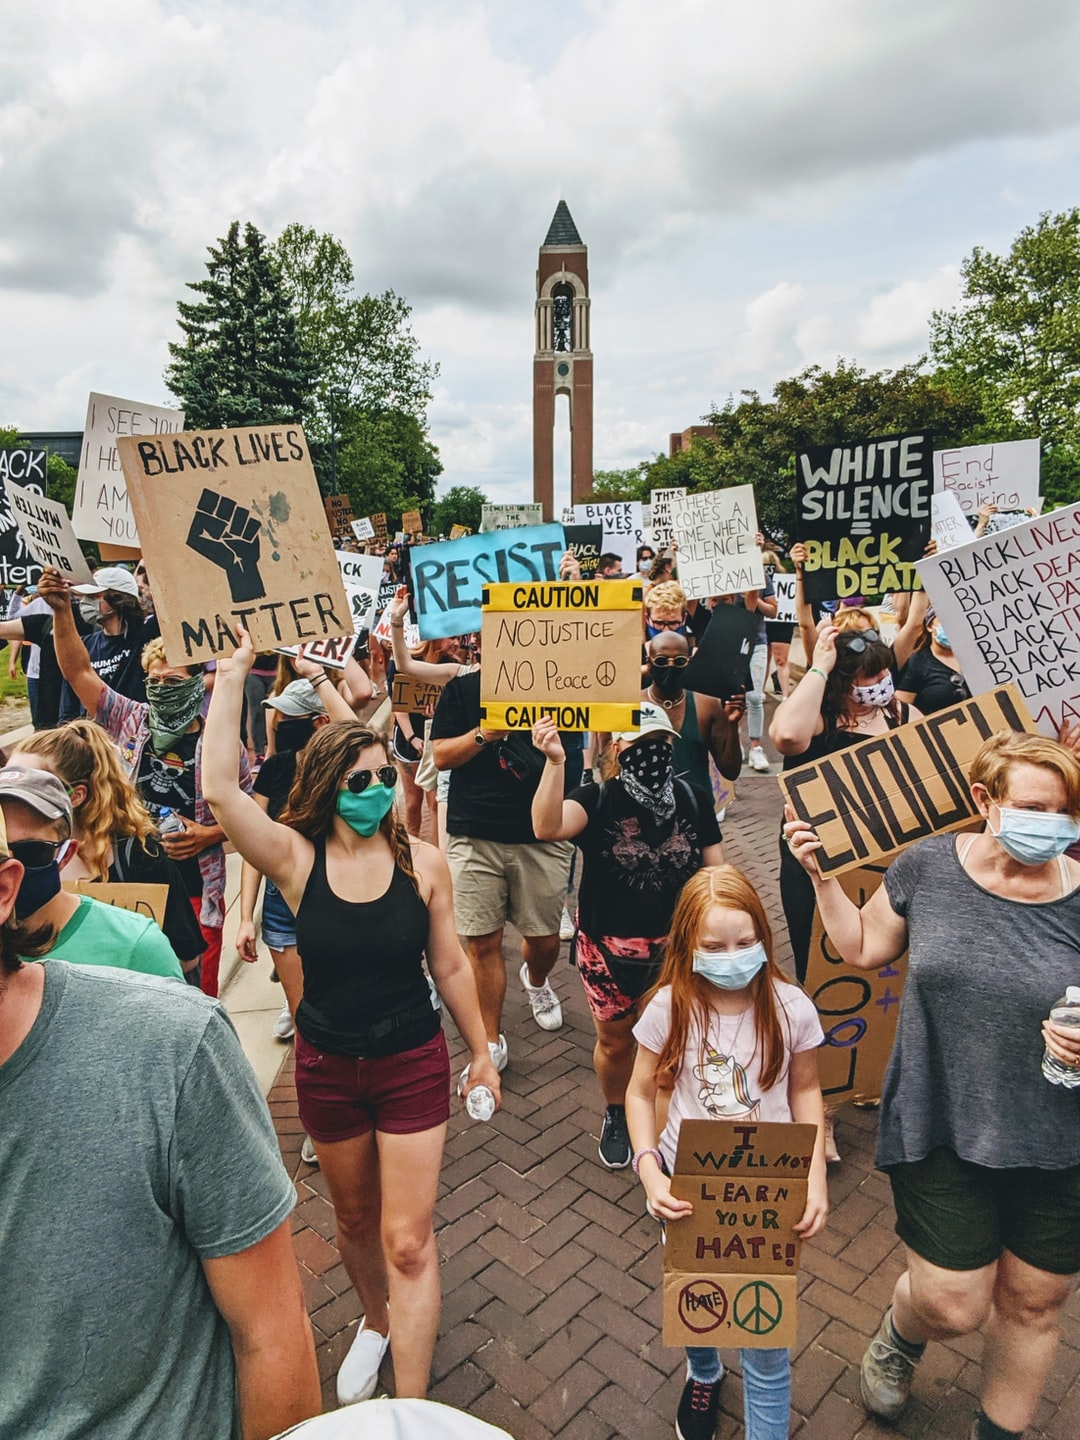 Black Lives Matter protest and march